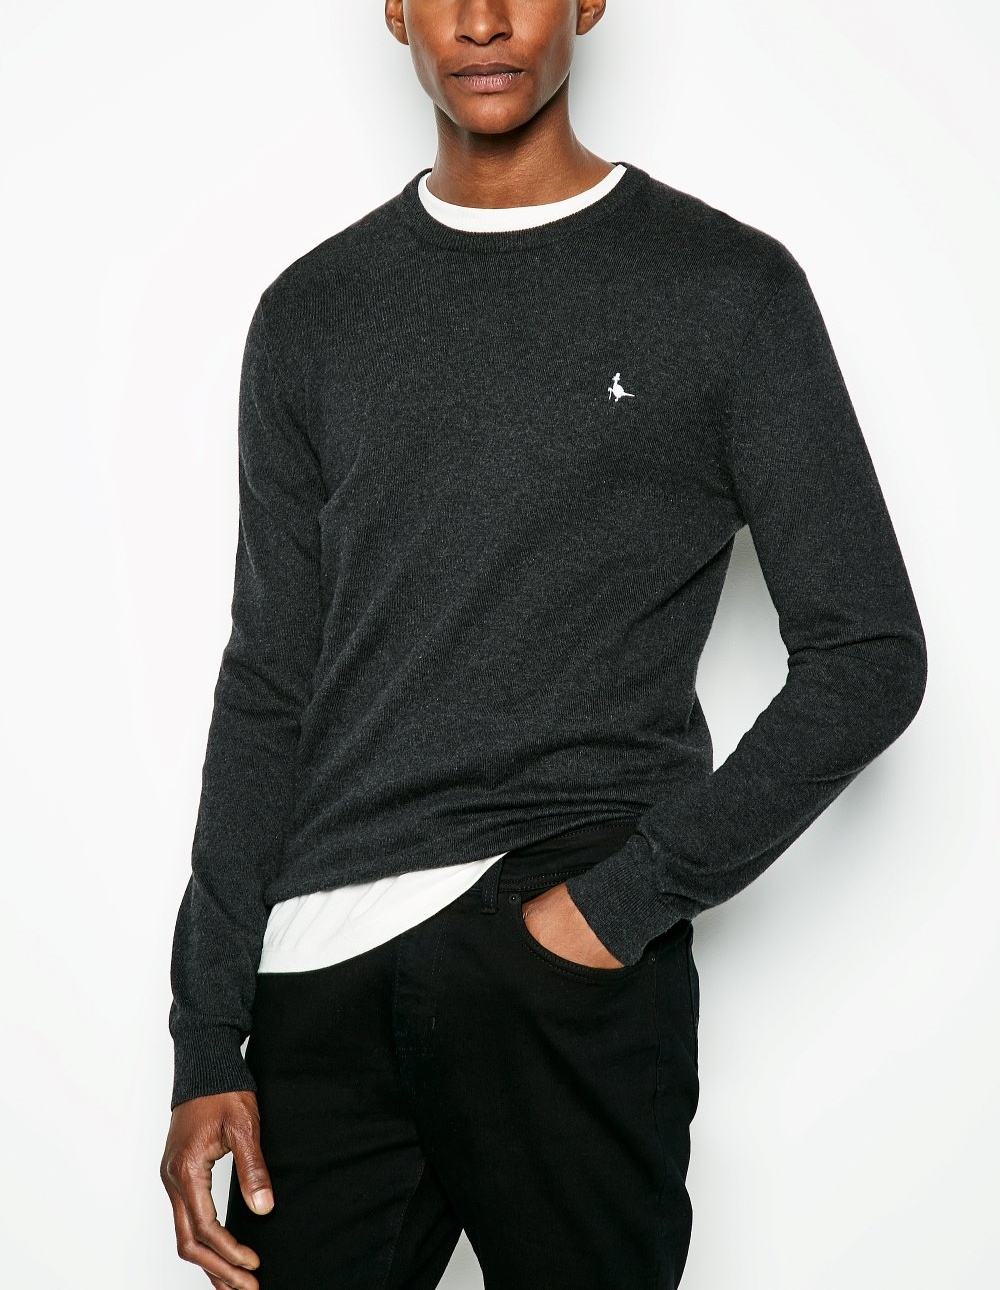 Jack Wills Charcoal SEABOURNE CLASSIC CREW NECK JUMPER